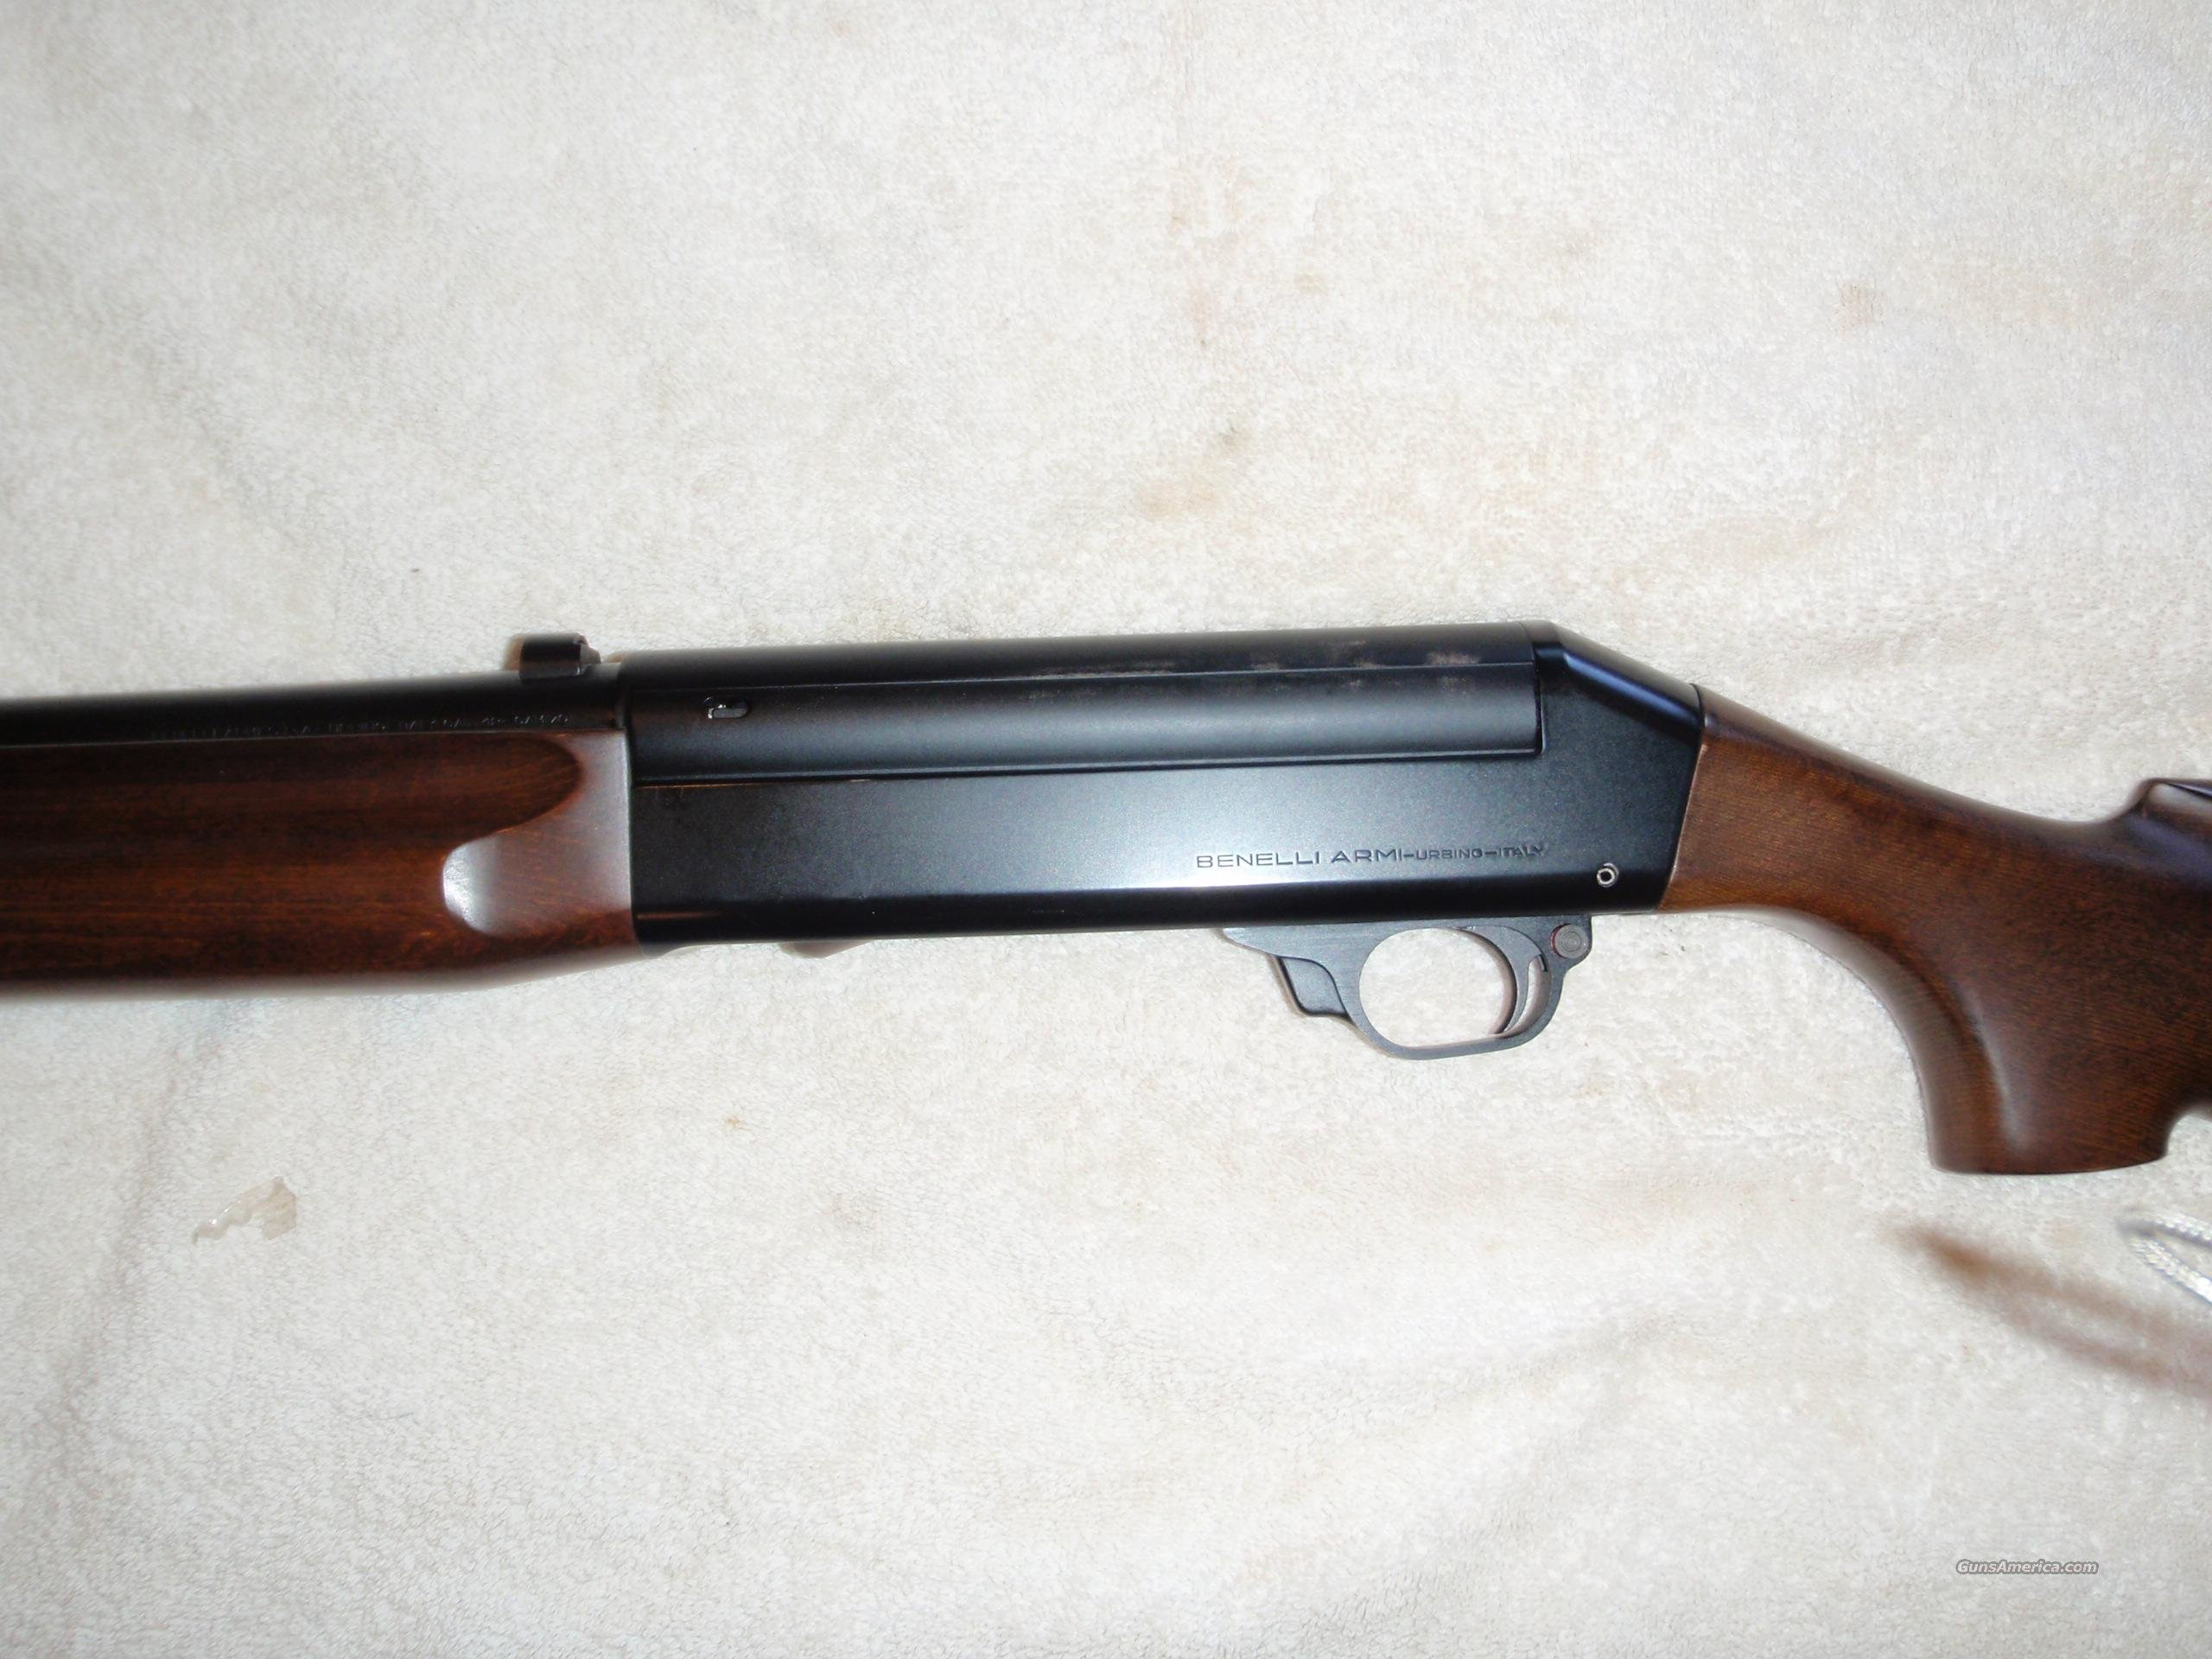 benelli model 121 m1 semi auto 12 ga shotgun for sale. Black Bedroom Furniture Sets. Home Design Ideas